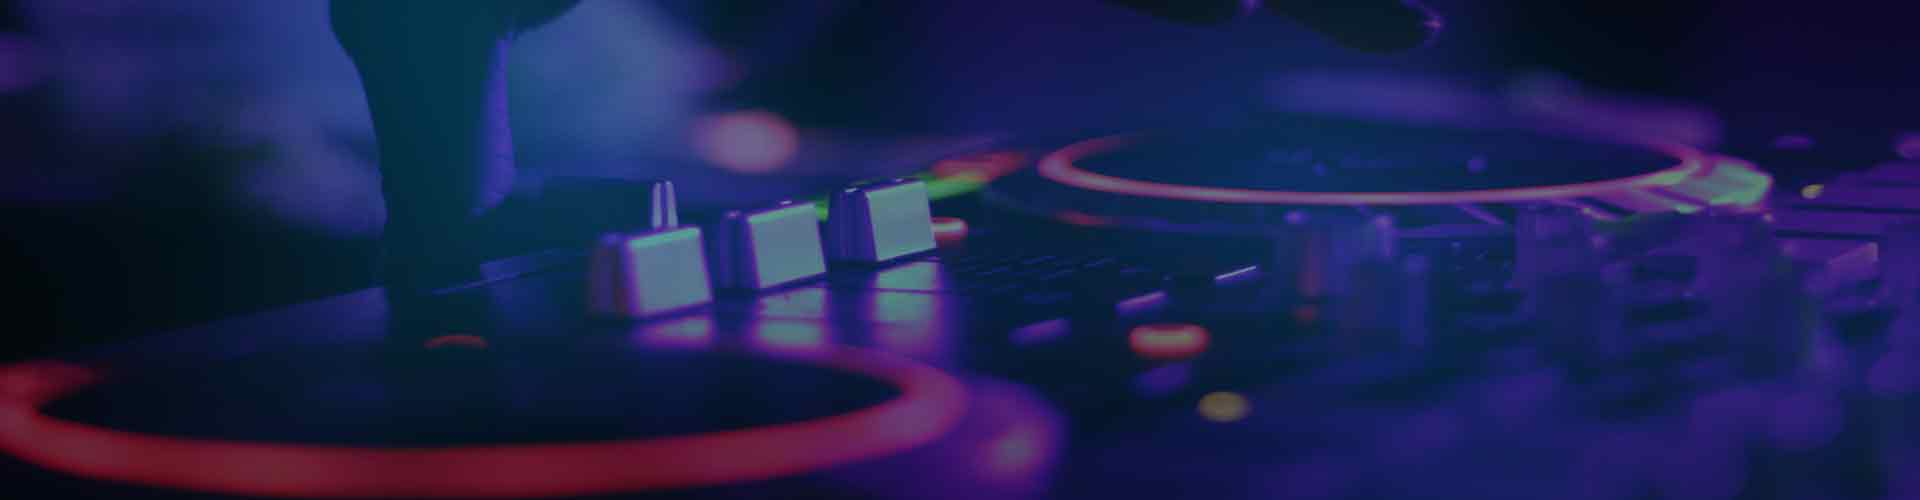 eddieb-dj-entertainment-background3